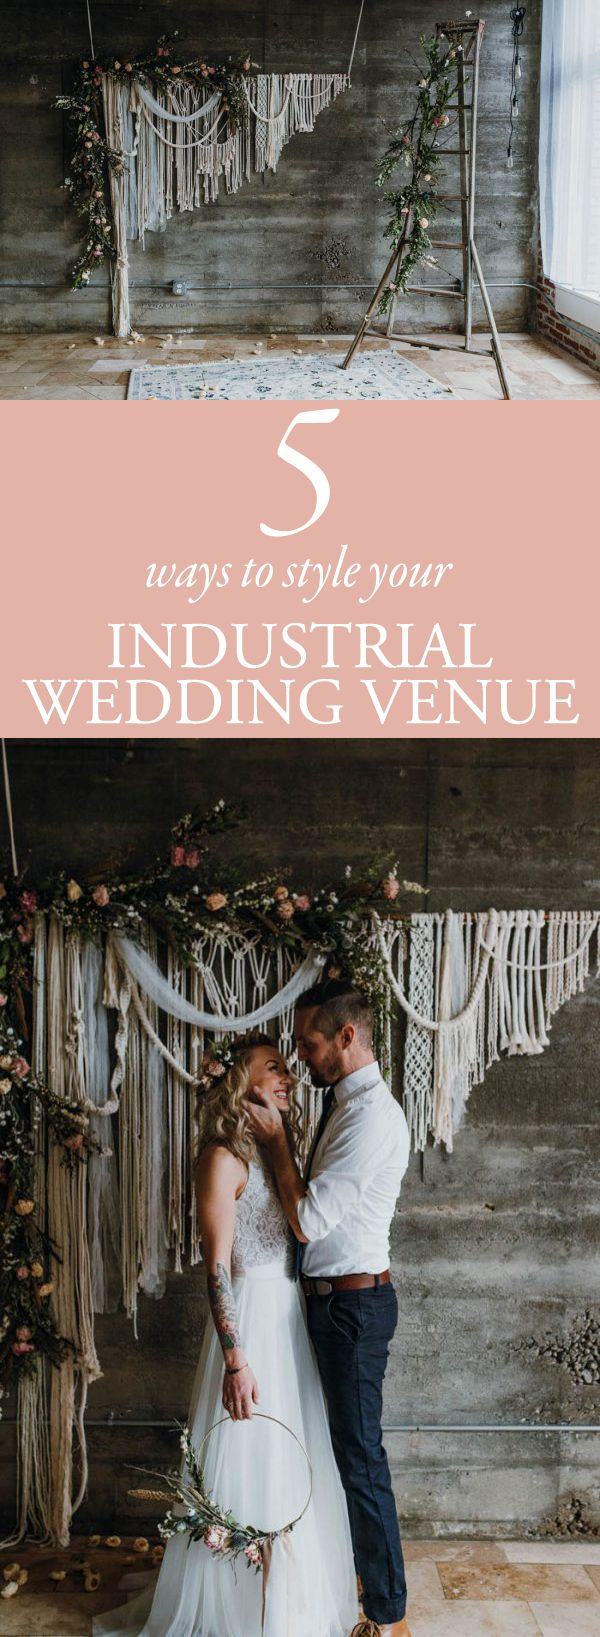 Add some flair to your wedding with these 5 Ways to Style Your Industrial Wedding Venue | Junebug Weddings